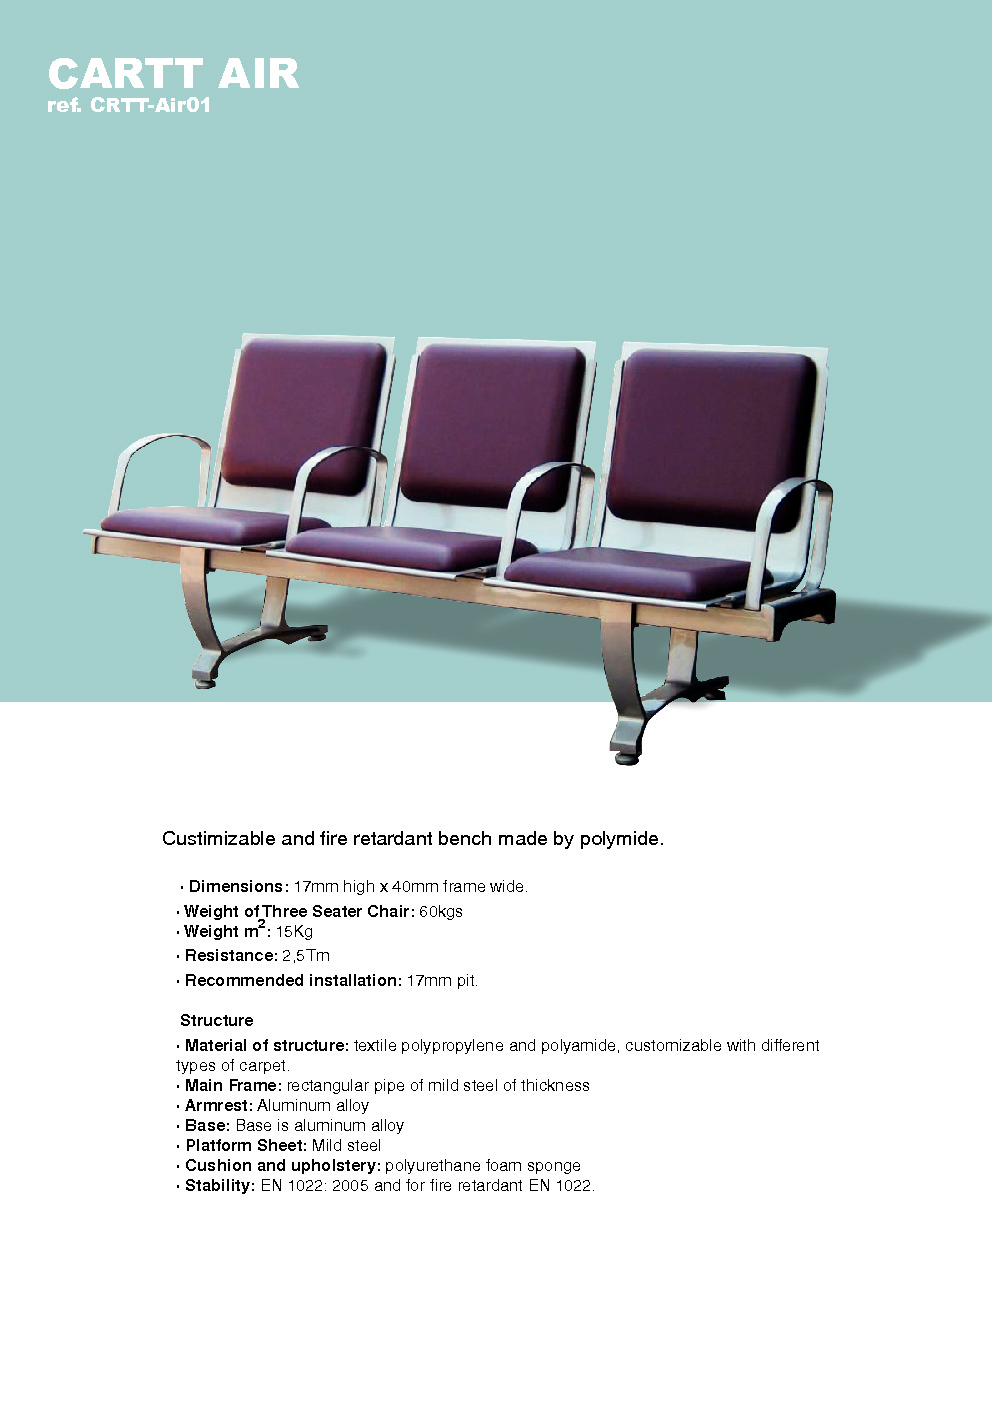 carttec airport-benches